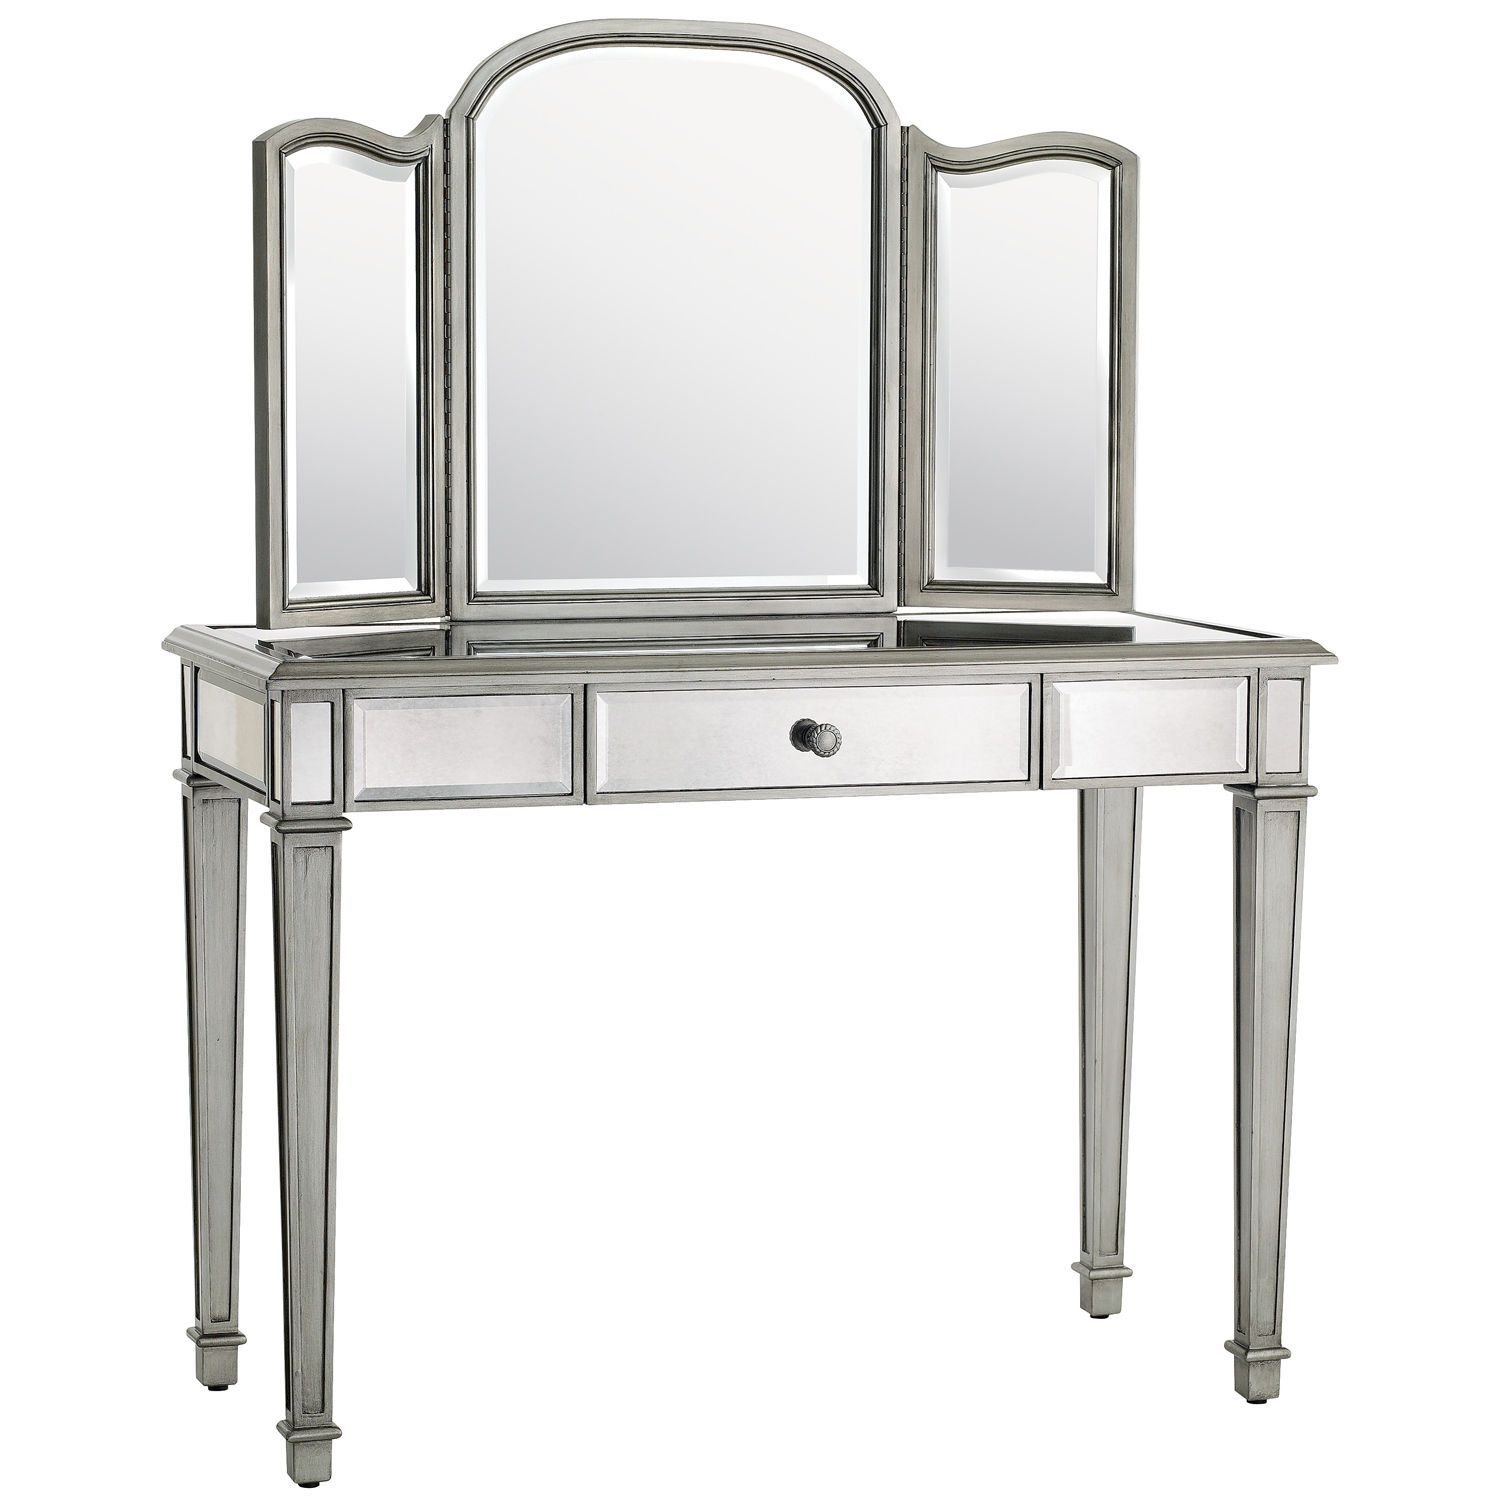 furniture brilliant pier one mirrored for any room enticing with target accent table and computer desk consoles wood console dresser dorm supplies lamps that use batteries spring